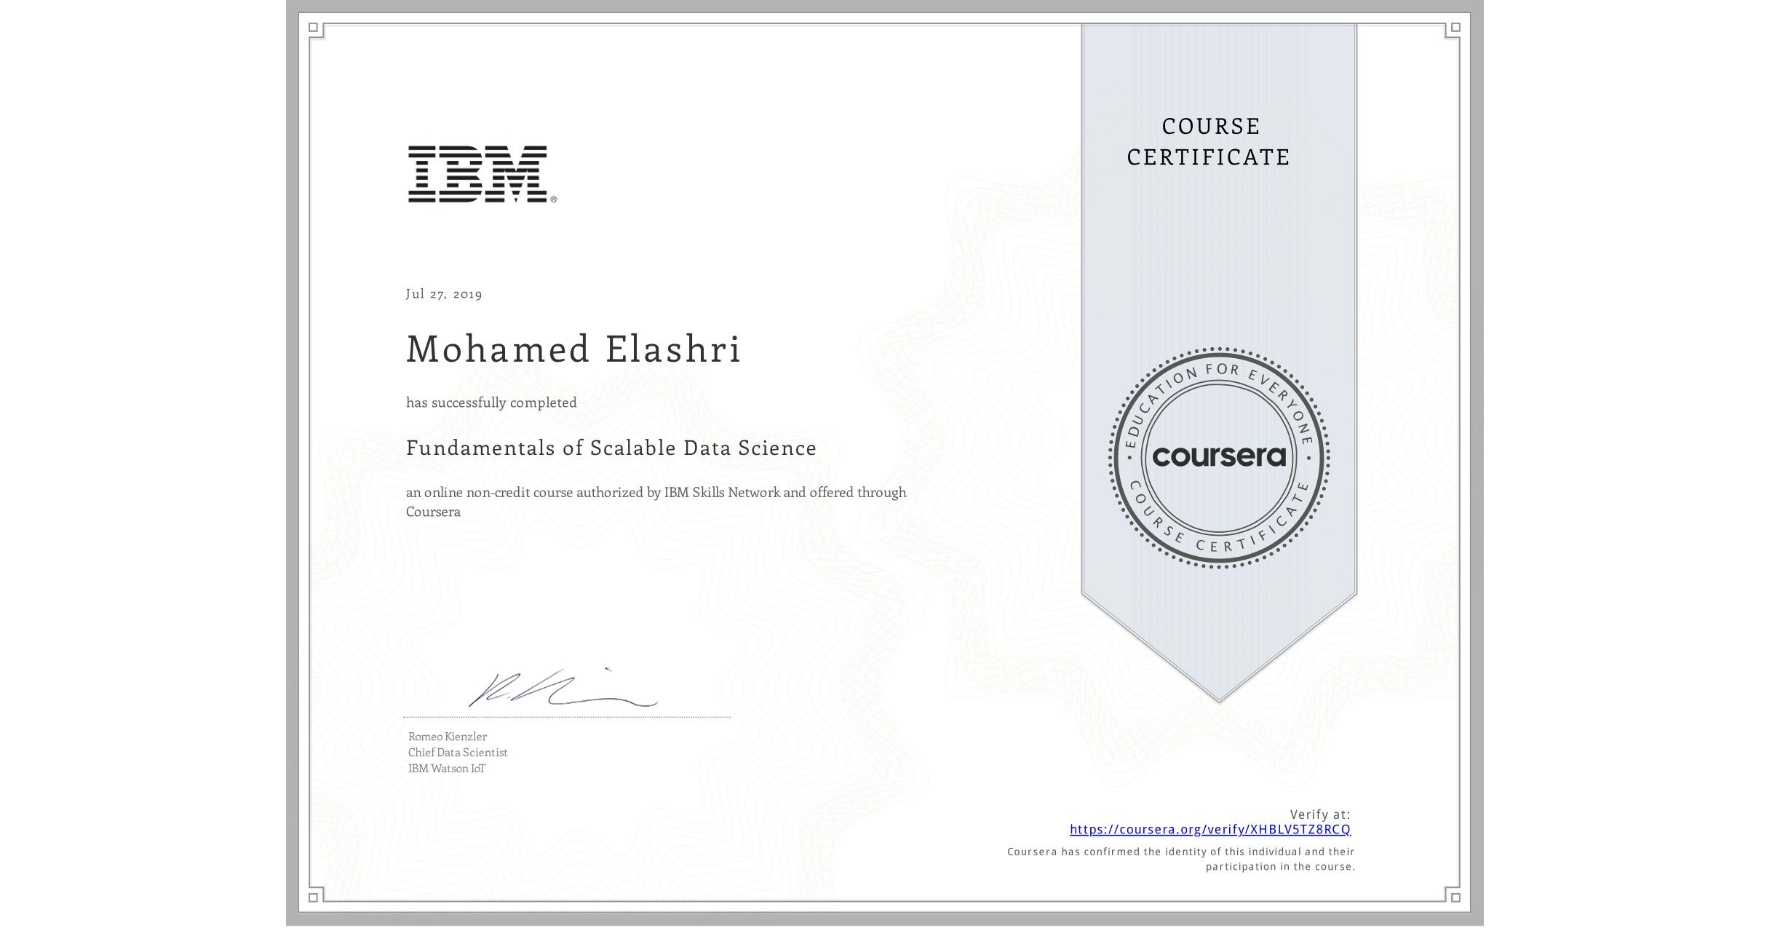 View certificate for Mohamed Elashri, Fundamentals of Scalable Data Science, an online non-credit course authorized by IBM and offered through Coursera